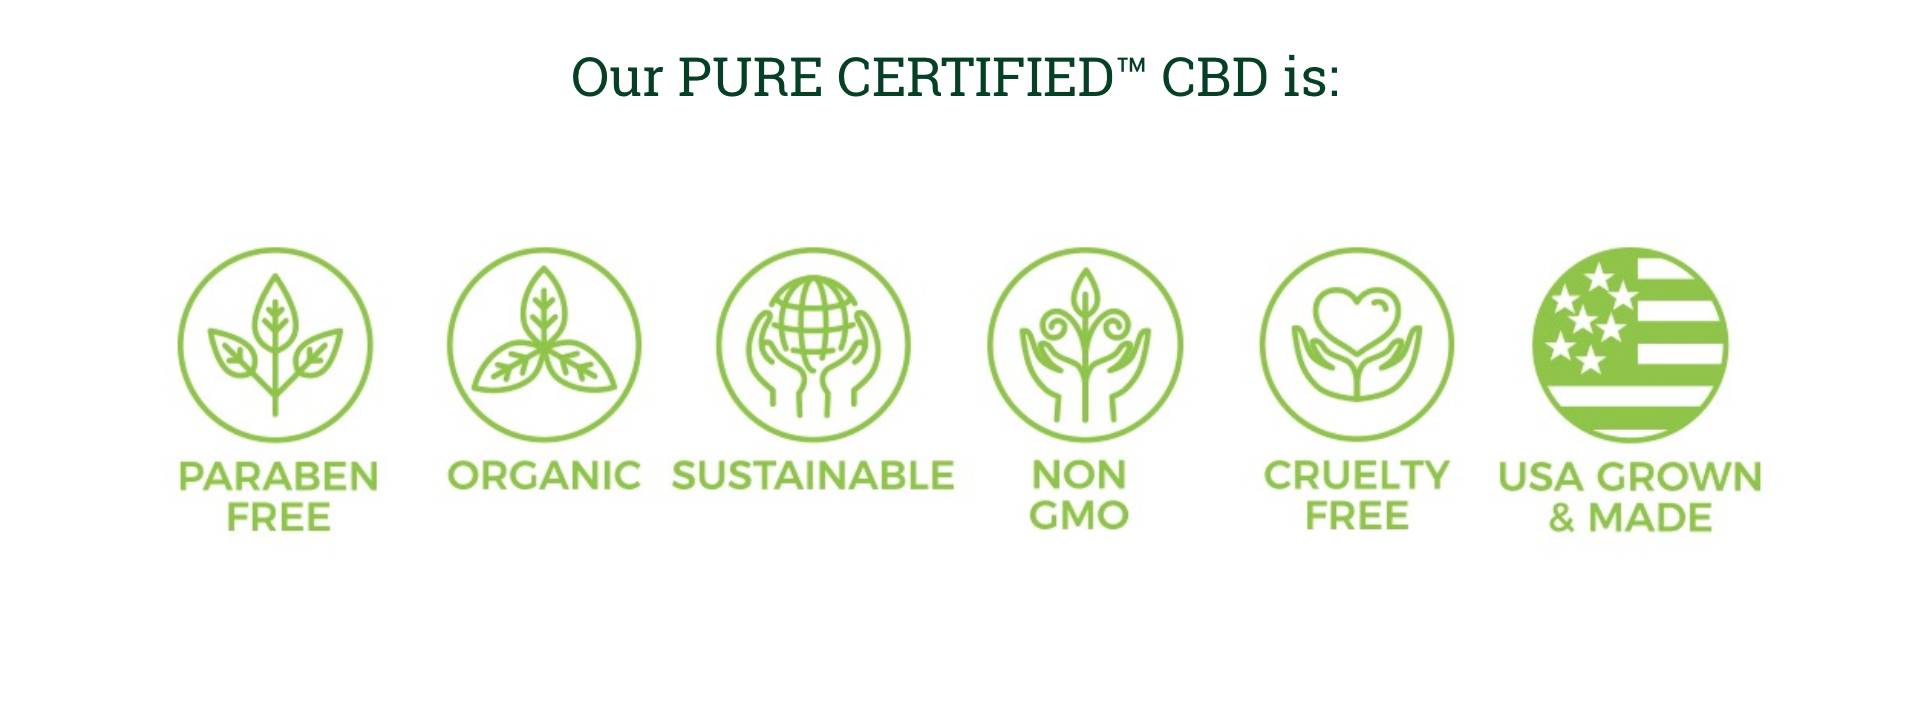 c4life-cbd-benefits